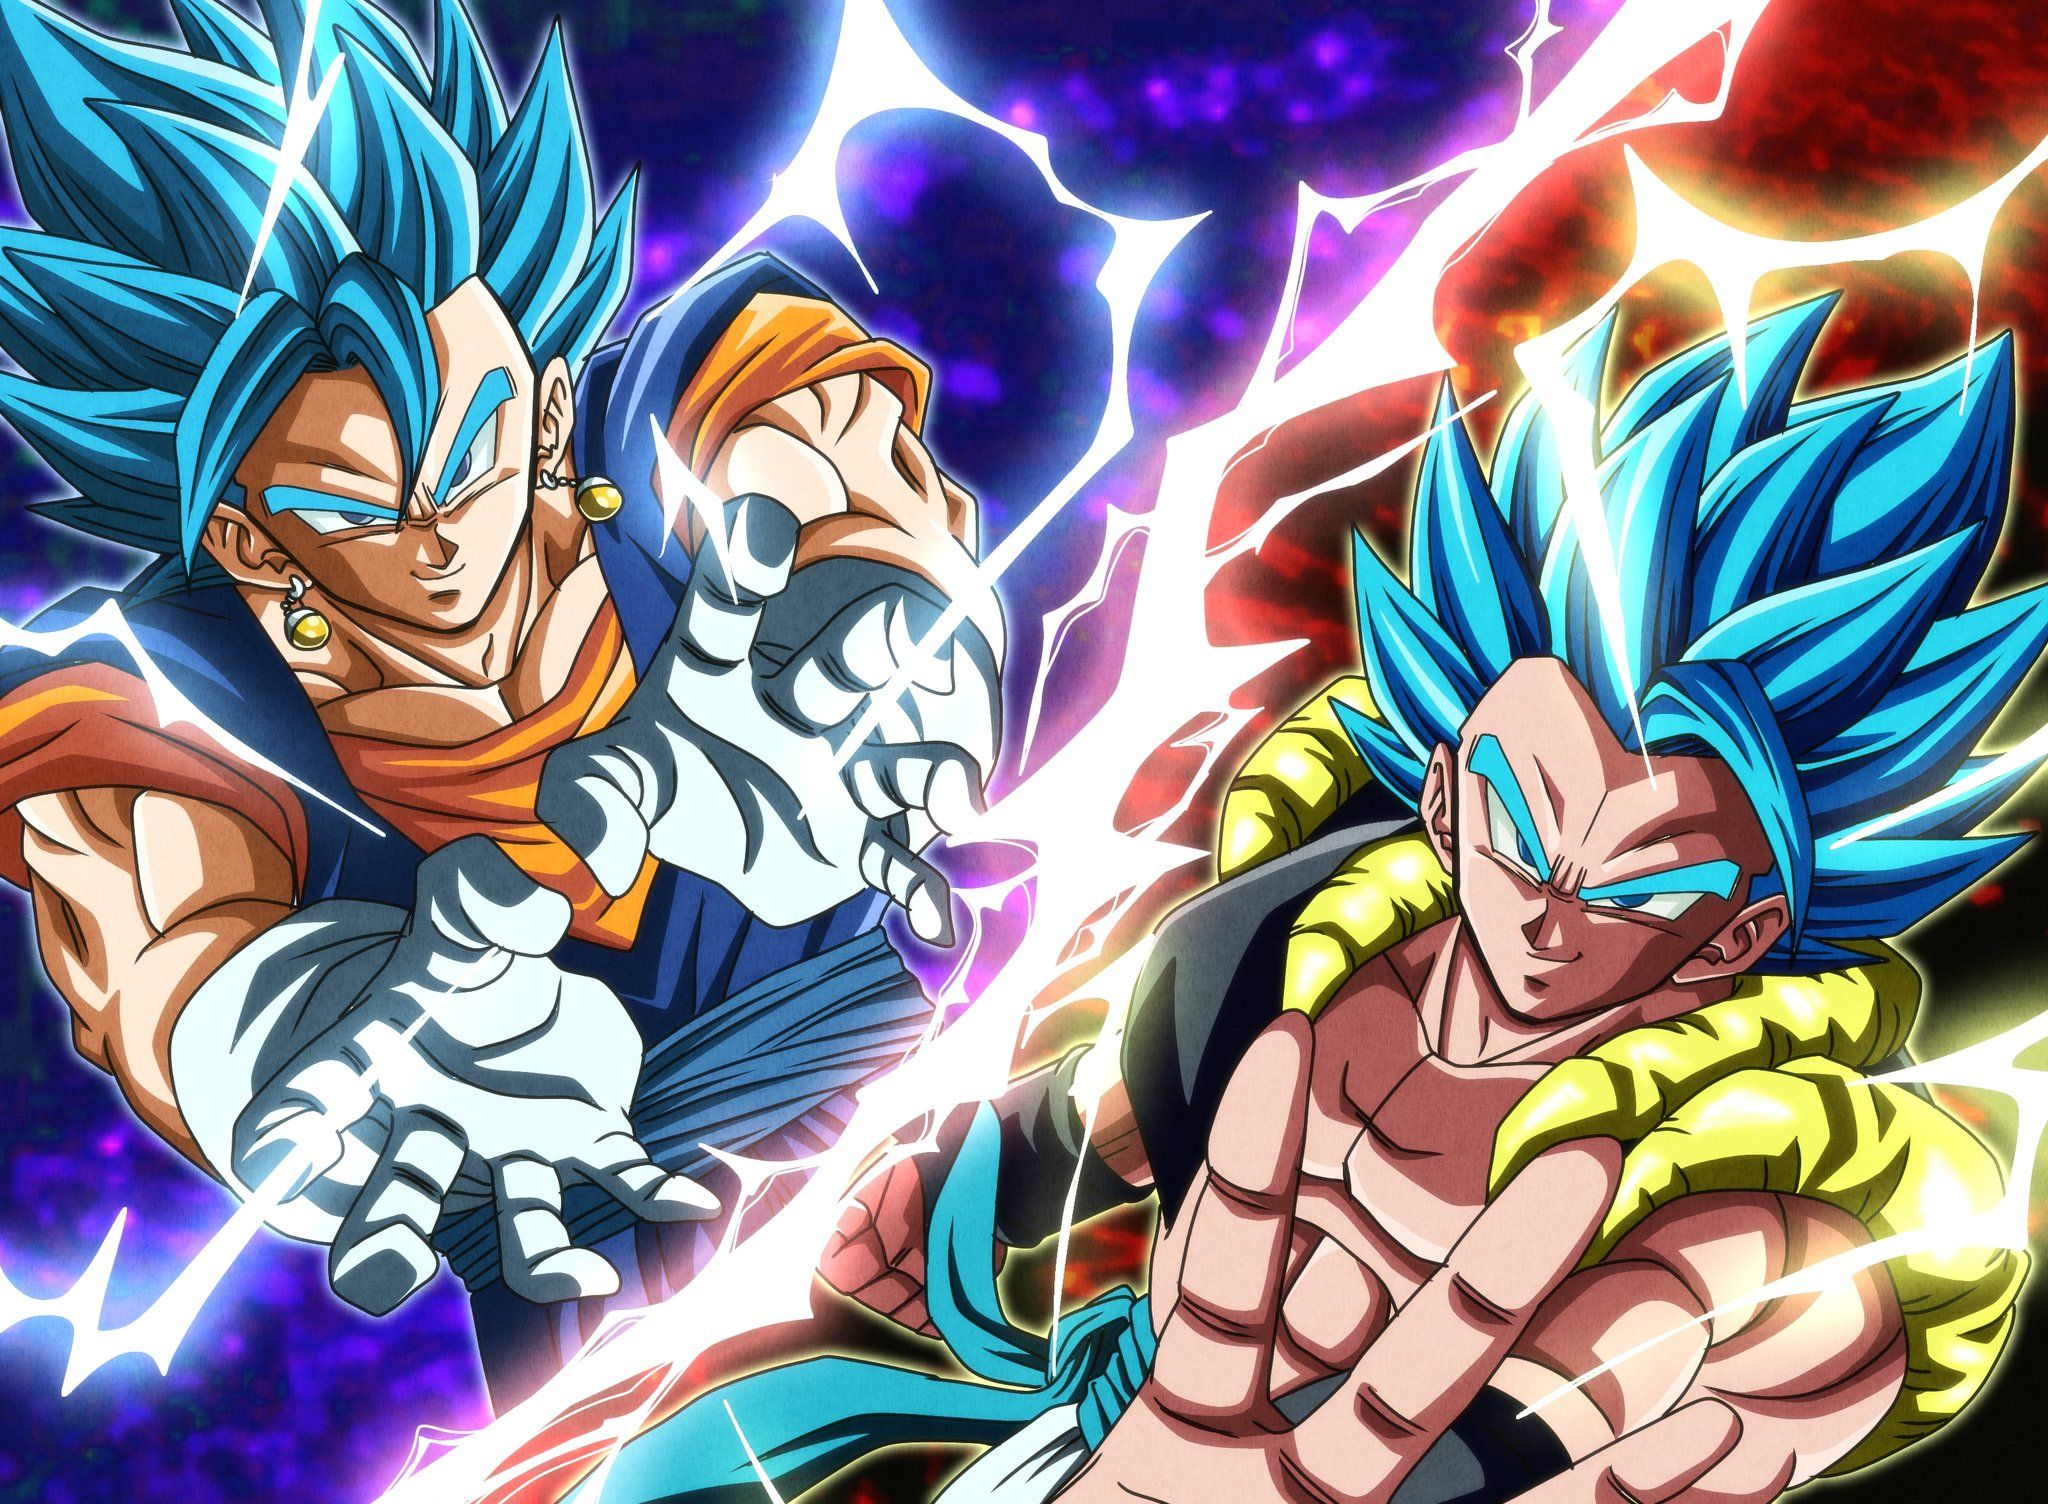 Pin de Stacey Green en VEGITO blue VS GOGETA blue en 2020